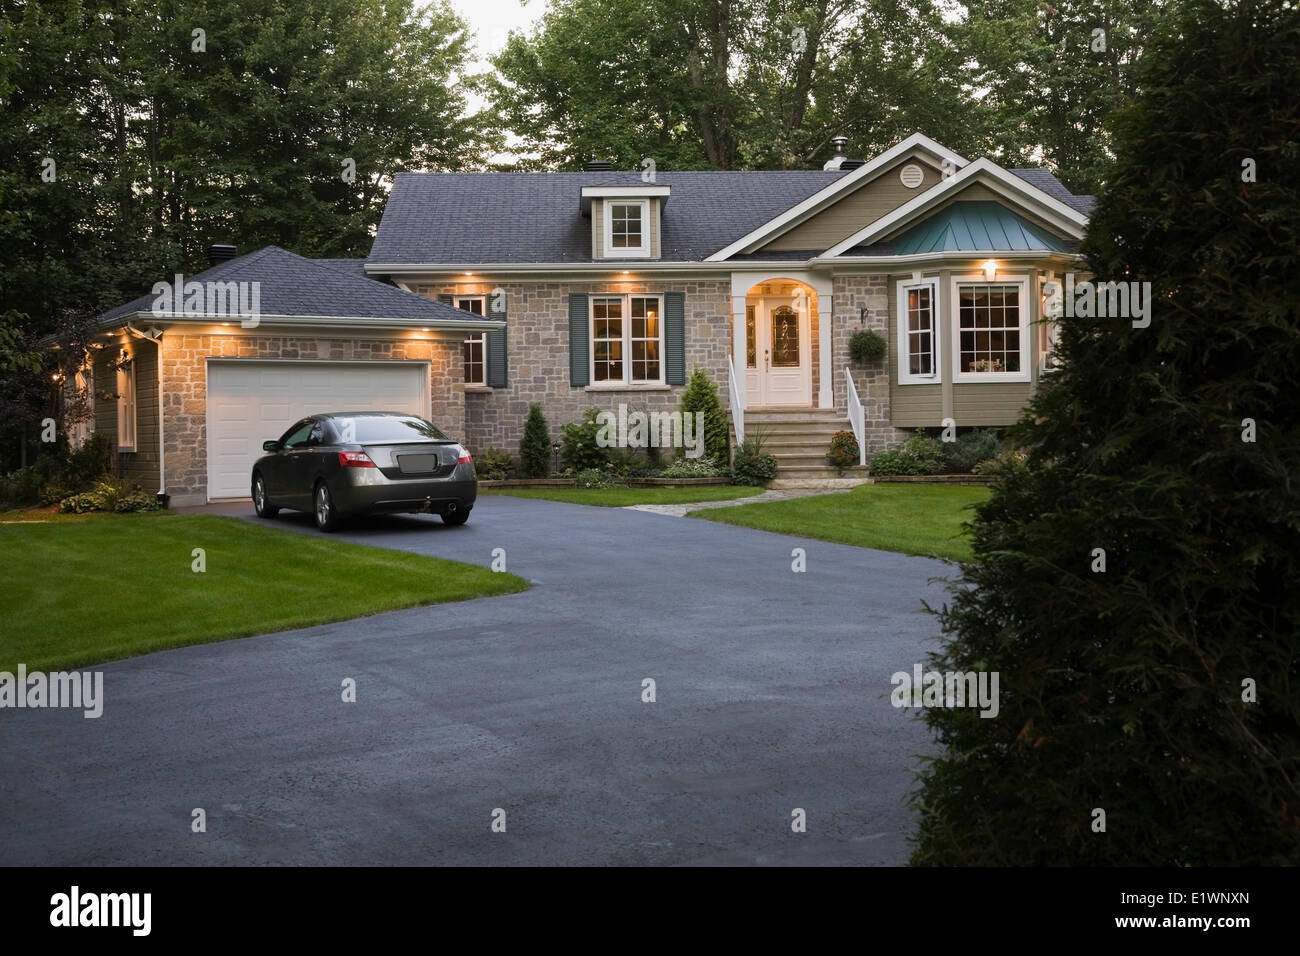 Brown beige gray stone residential home landscaped front yard illuminated at dusk Quebec Canada. This image is property - Stock Image